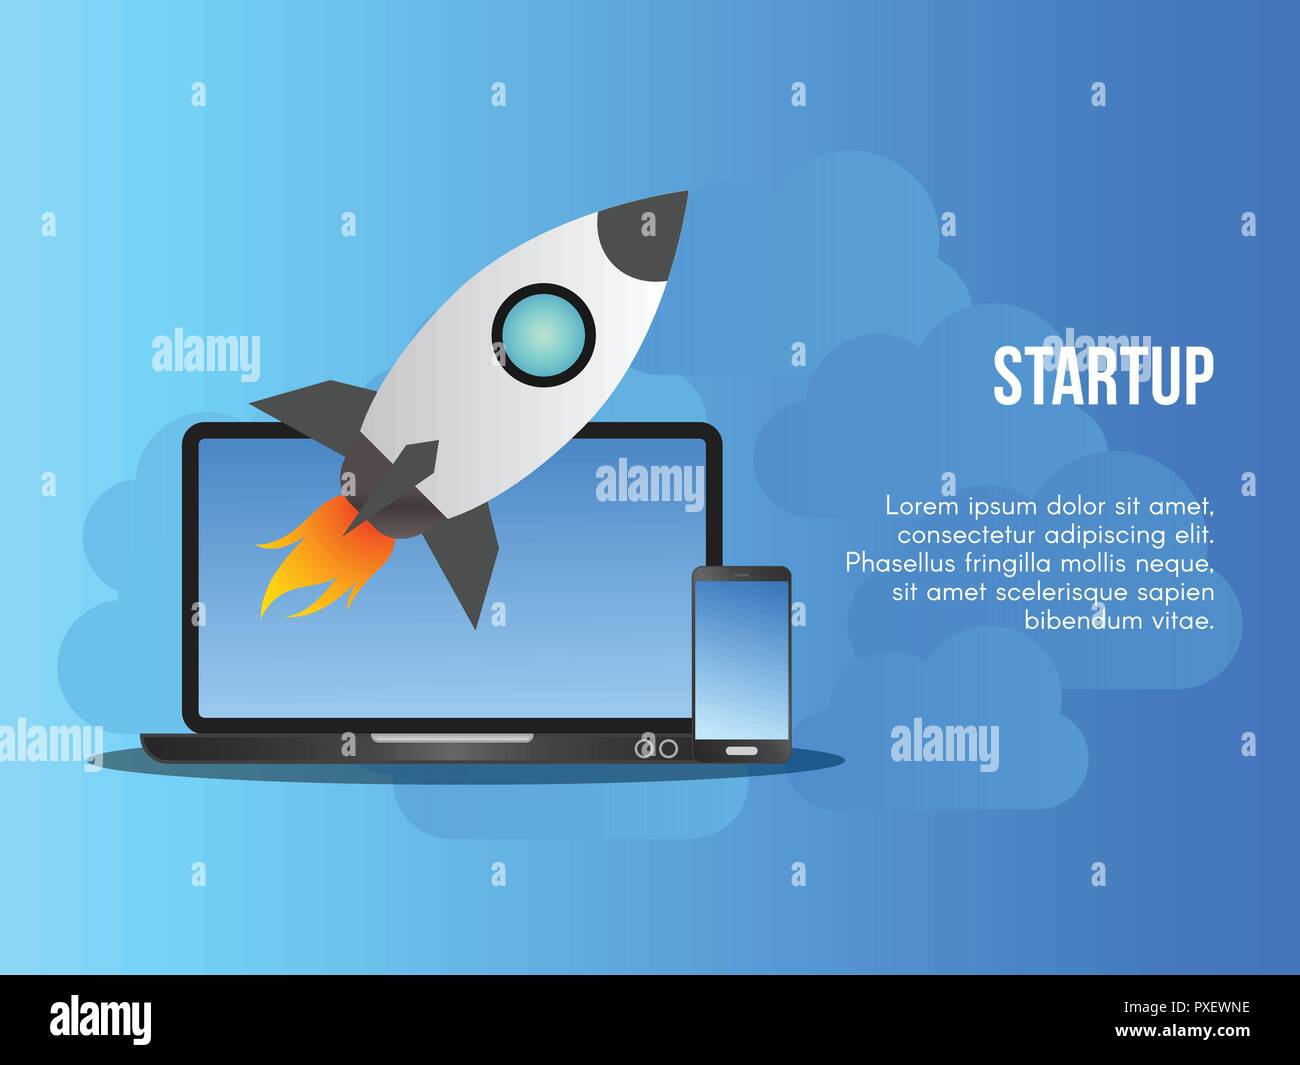 Startup business concept. Ready to use vector. Suitable for background, wallpaper, landing page, web, banner and other creative work.